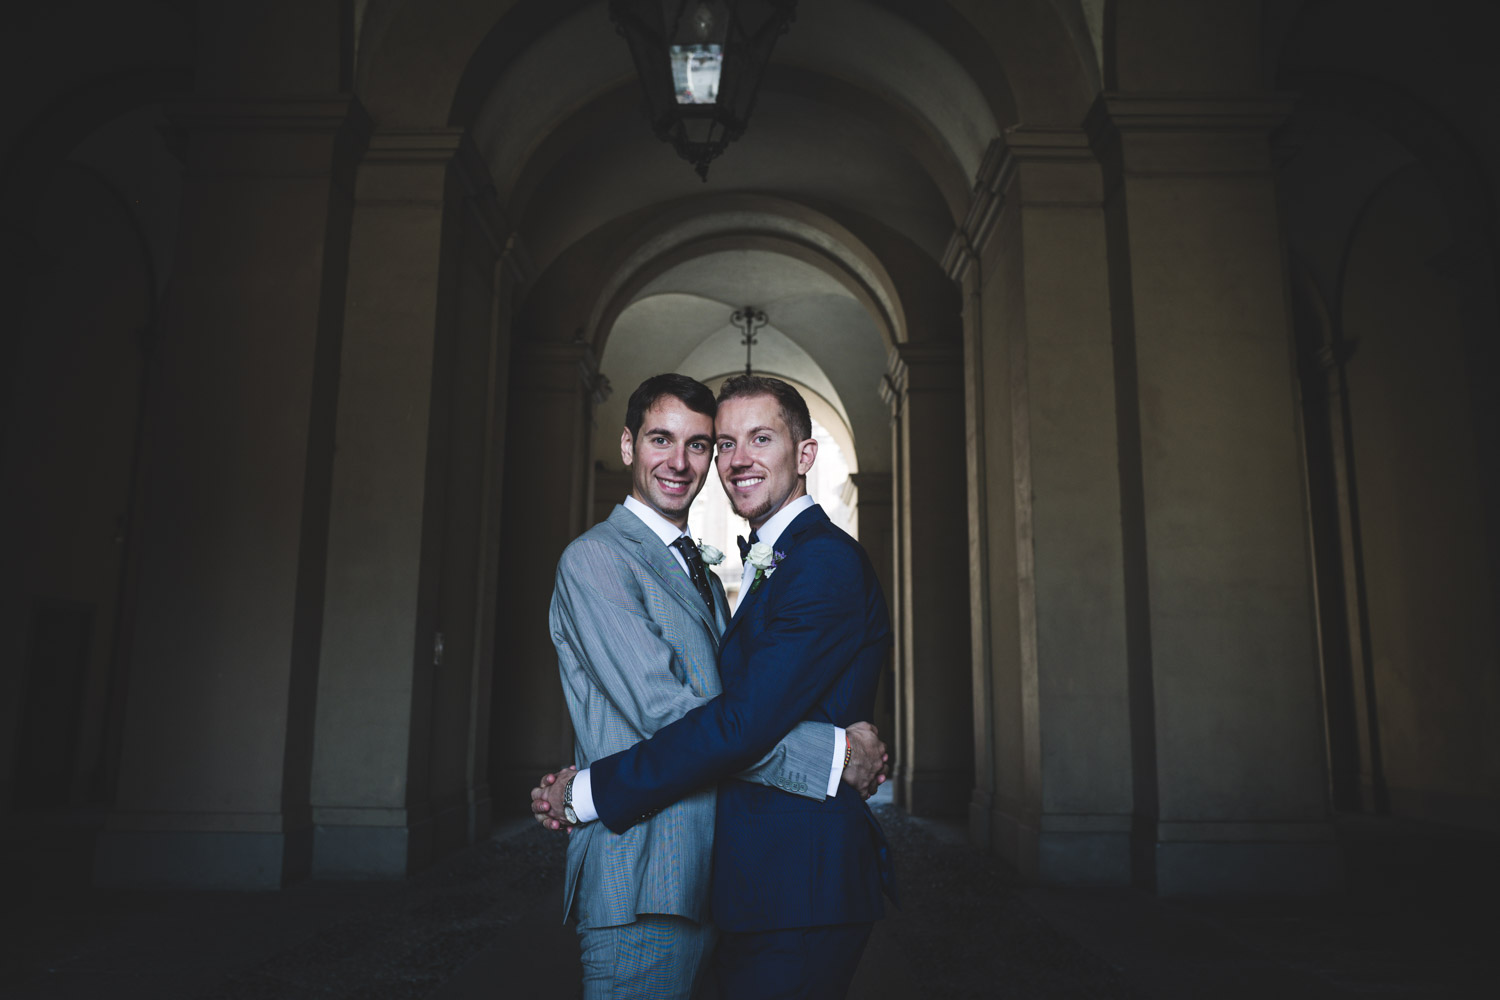 monica-sica_photography_trattoria-revelli_wedding-gay_torino_day_45